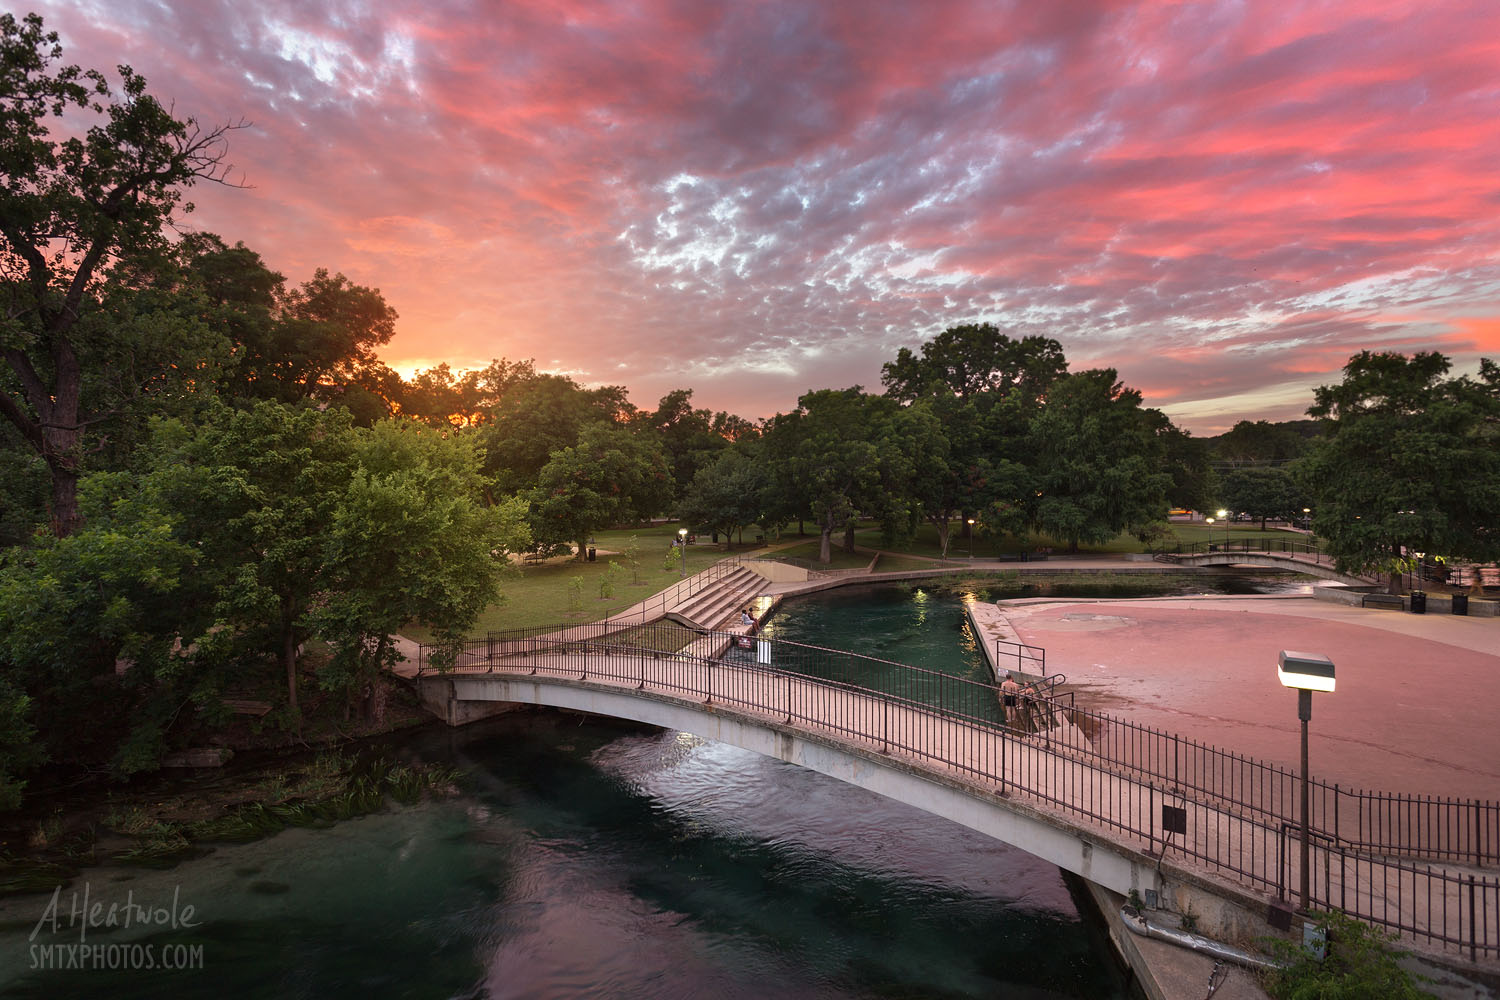 Sunset Glow at Sewell Park